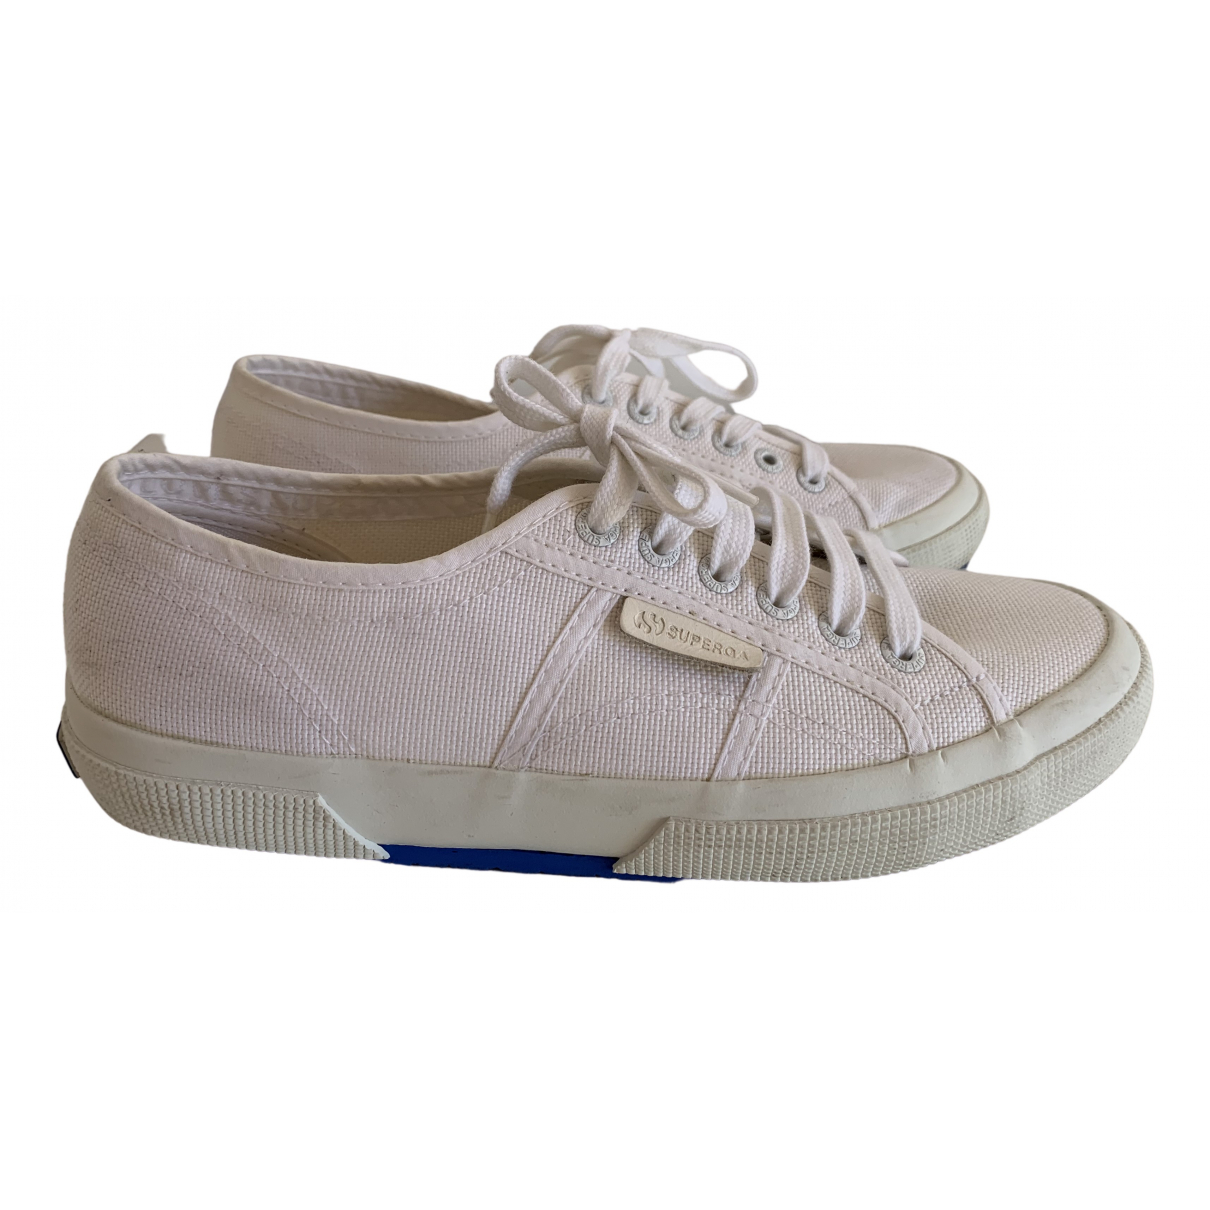 Sandro \N Sneakers in  Weiss Leinen